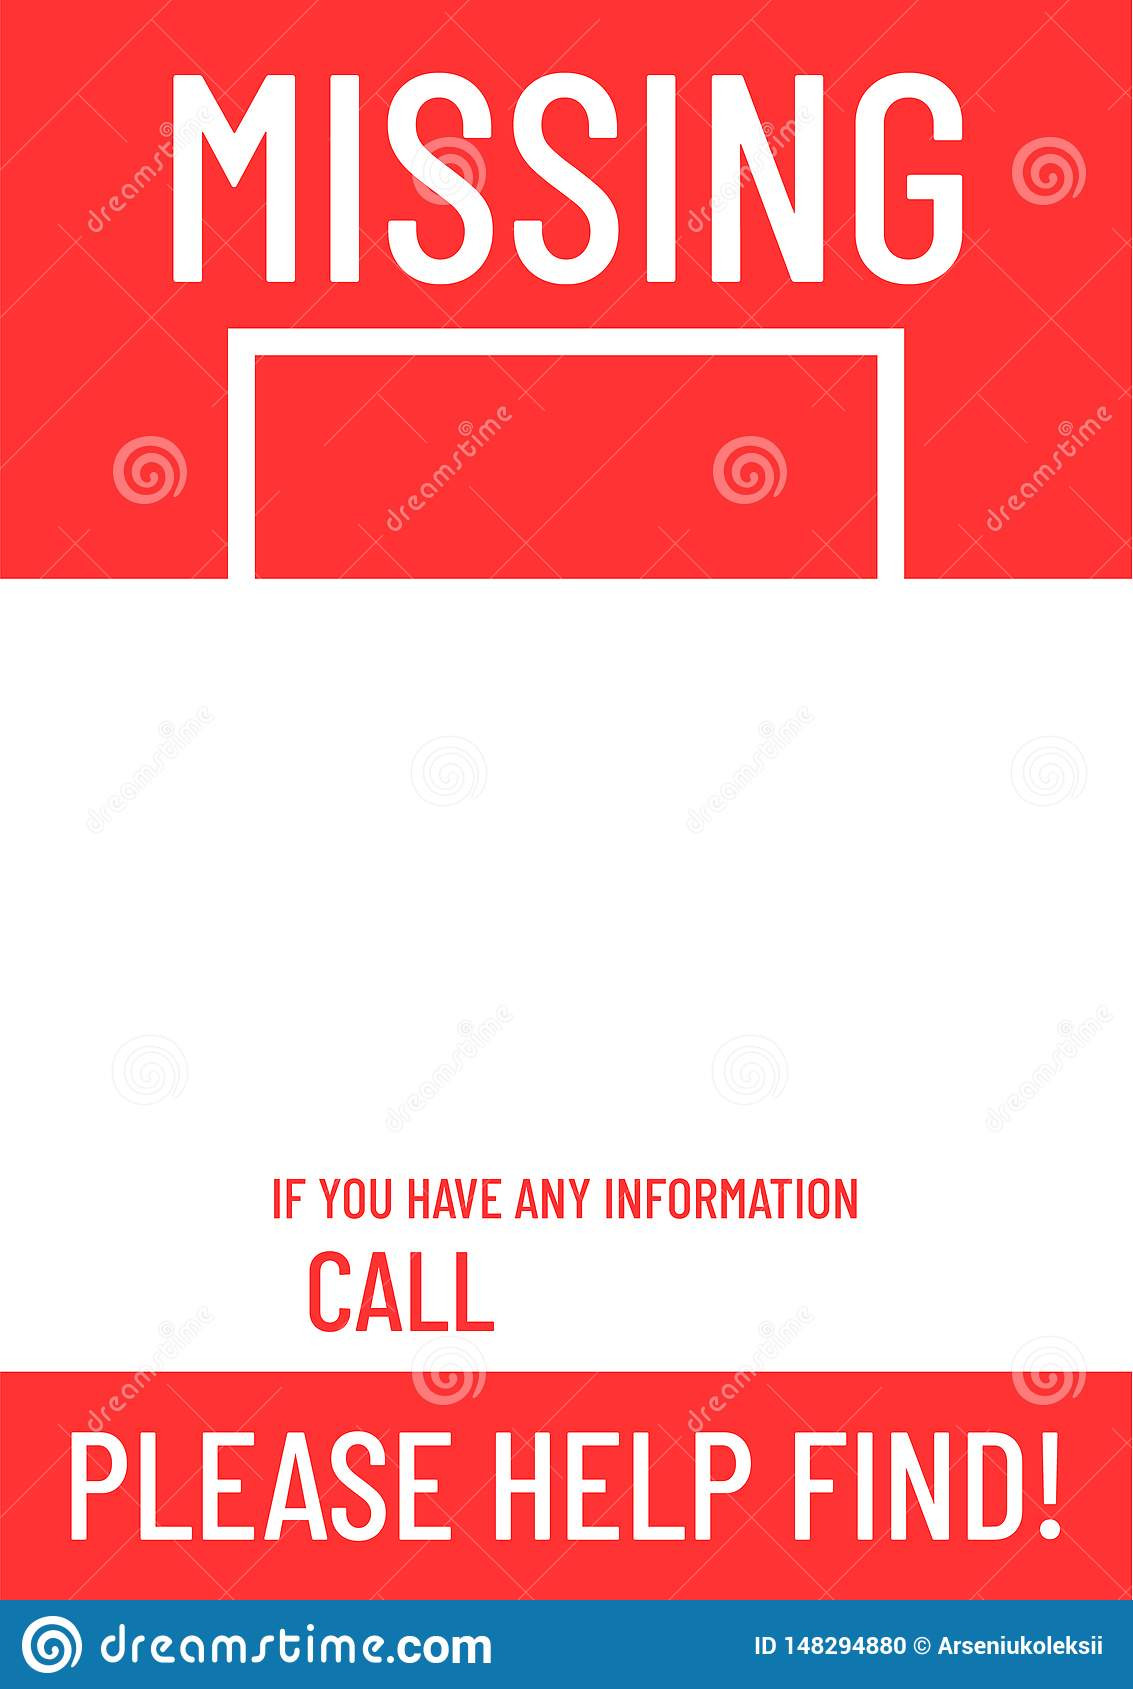 Missing Person Poster Template